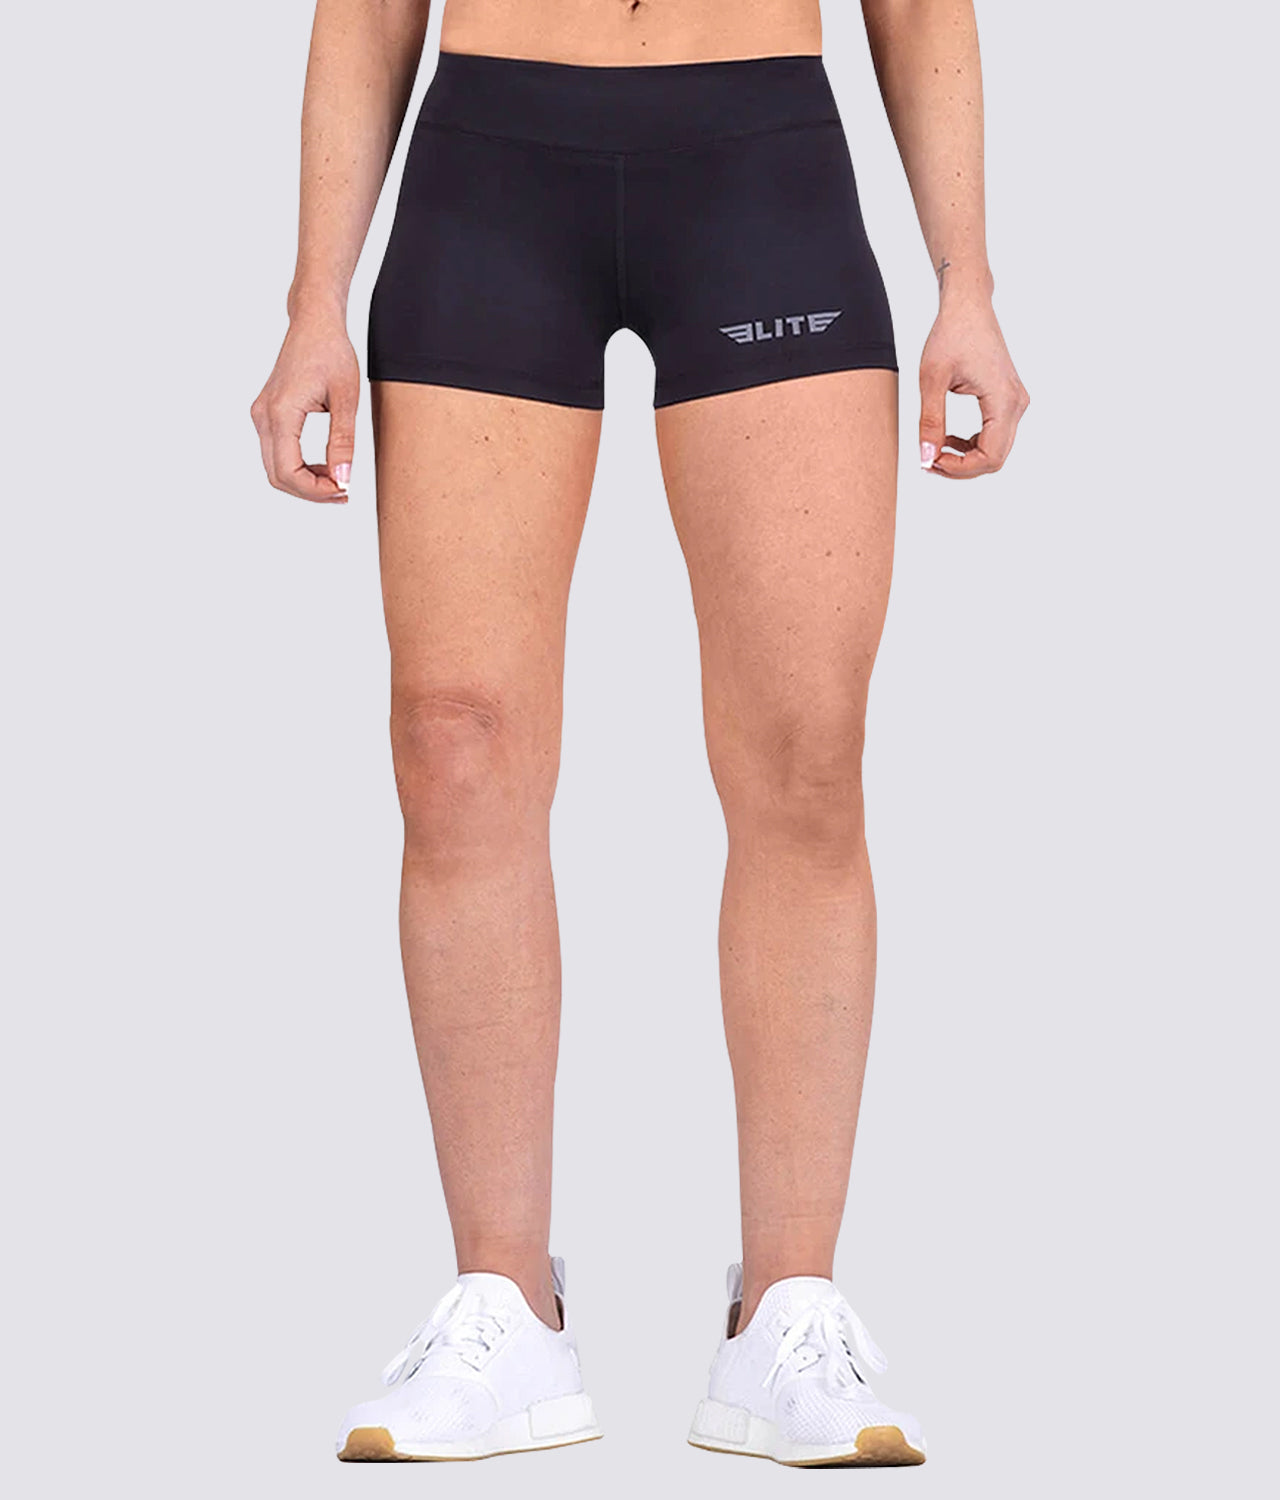 Elite Sports Extreme Softness Women Plain Black Judo Shorts